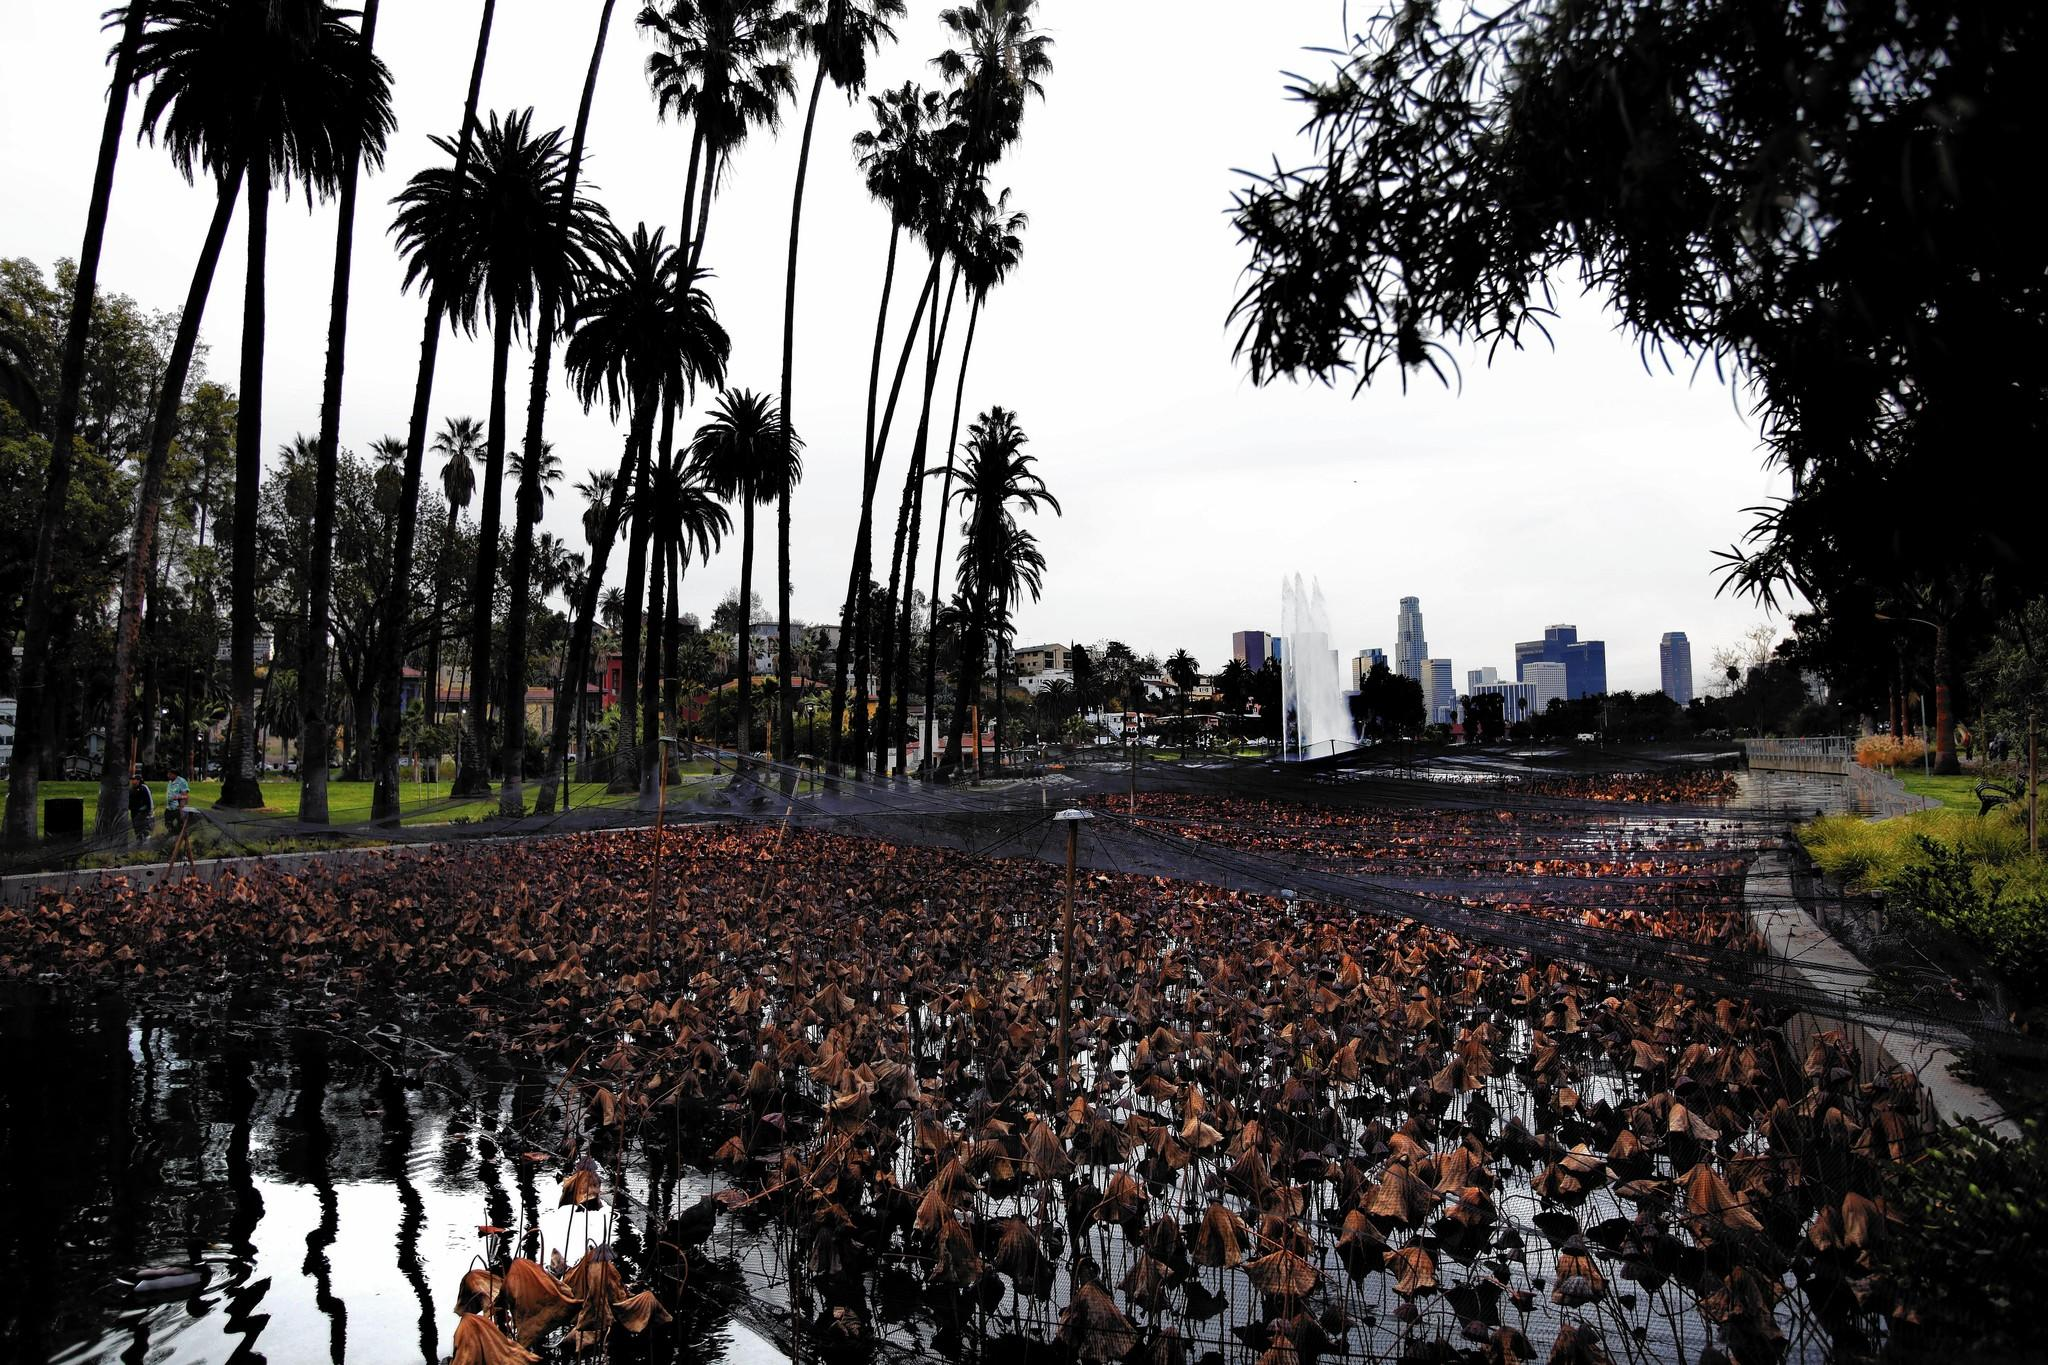 Dormant brown lotus plants are visible in Echo Park Lake after recent restoration.